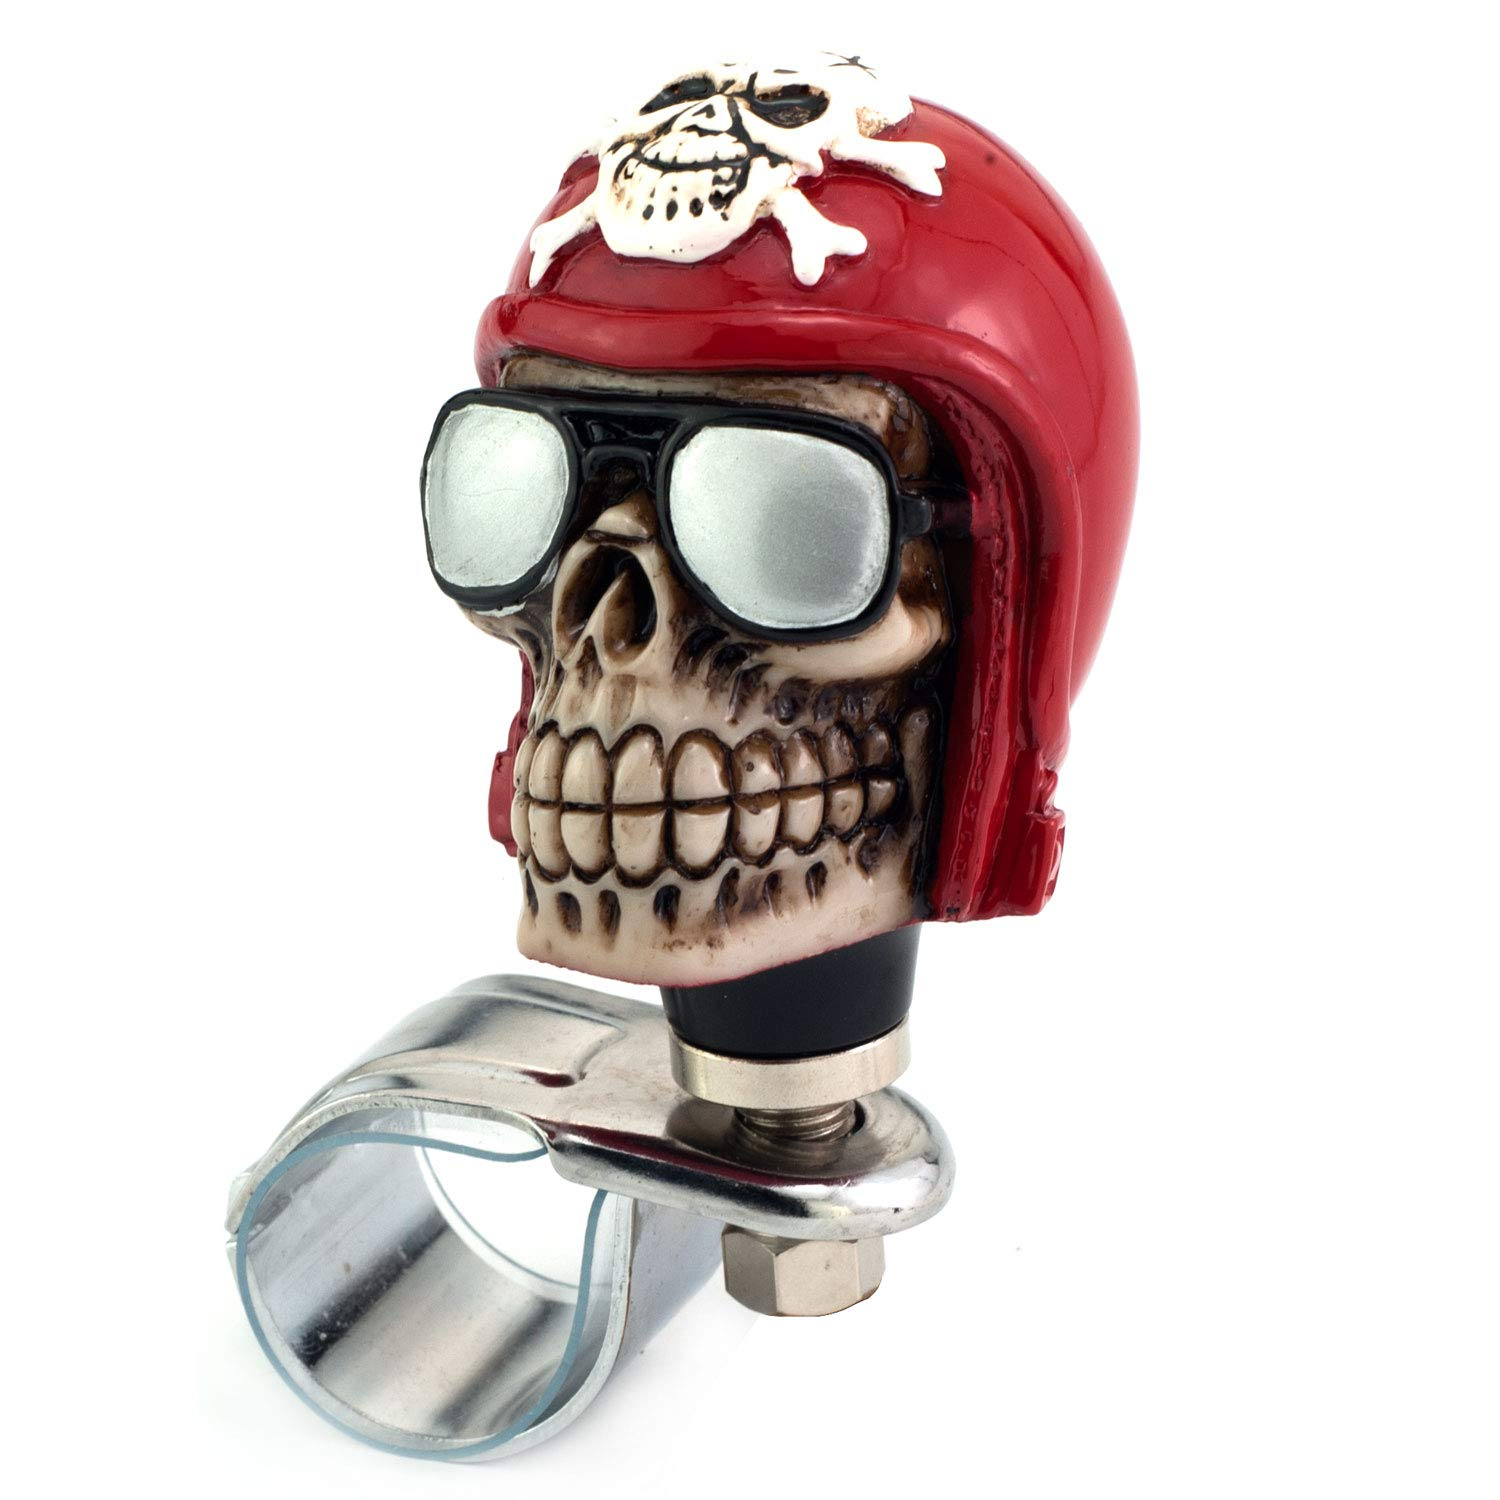 Thruifo Skull Car Steering Spinner Wheel Suicide Knob, Pilot Style Car Power Handle Grip Knobs Fit Most Manual Automatic Vehicles, Red